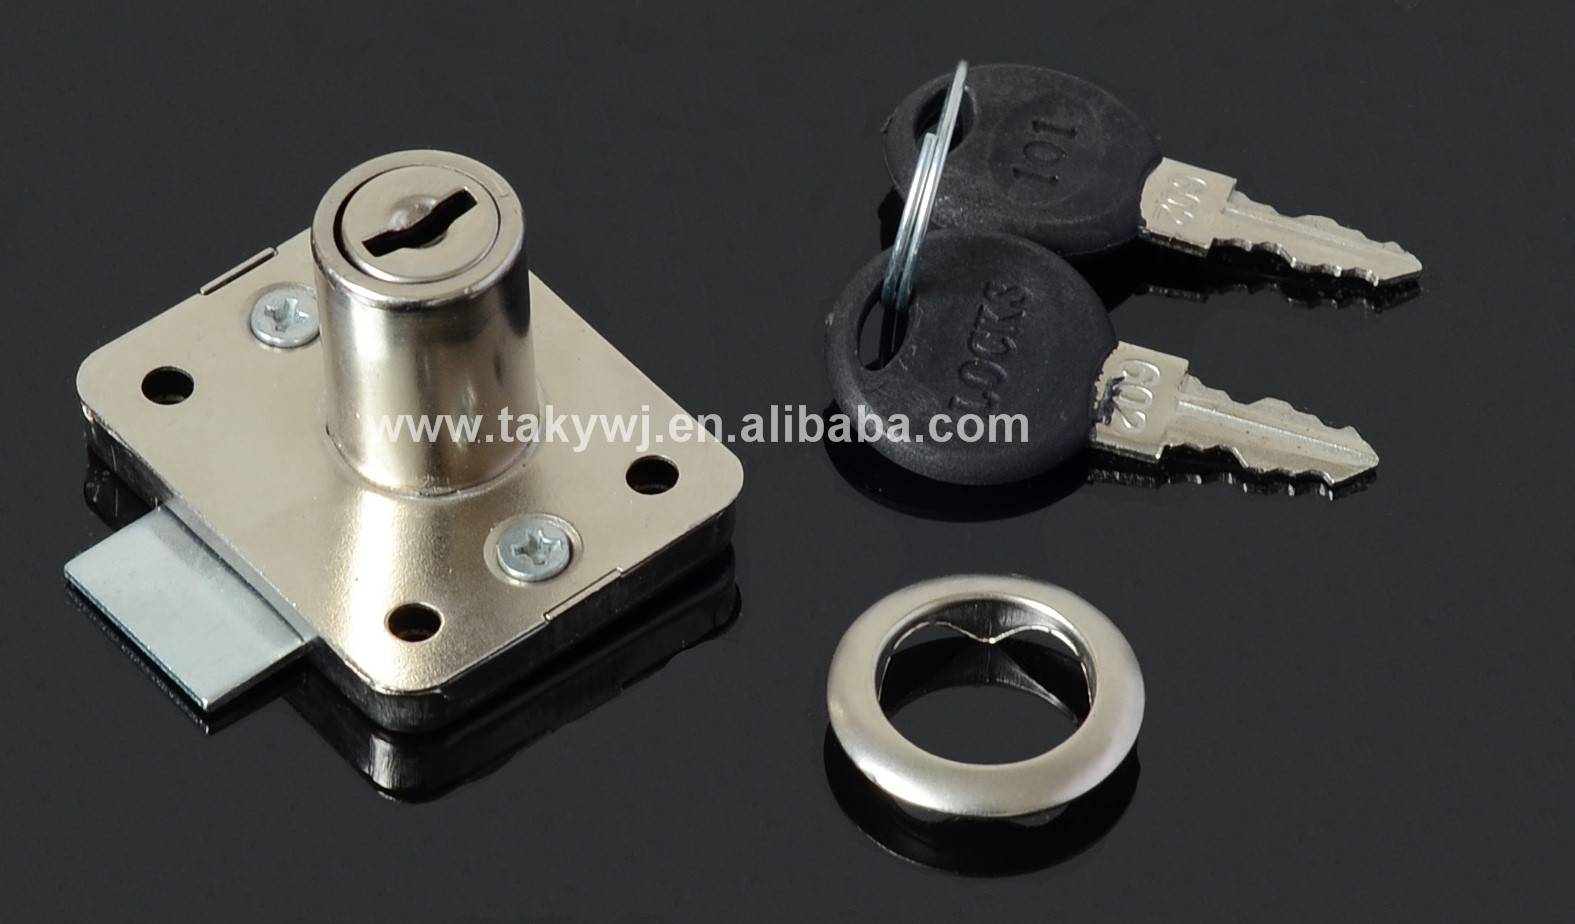 101 TAKY iron cabinet drawer lock for furniture